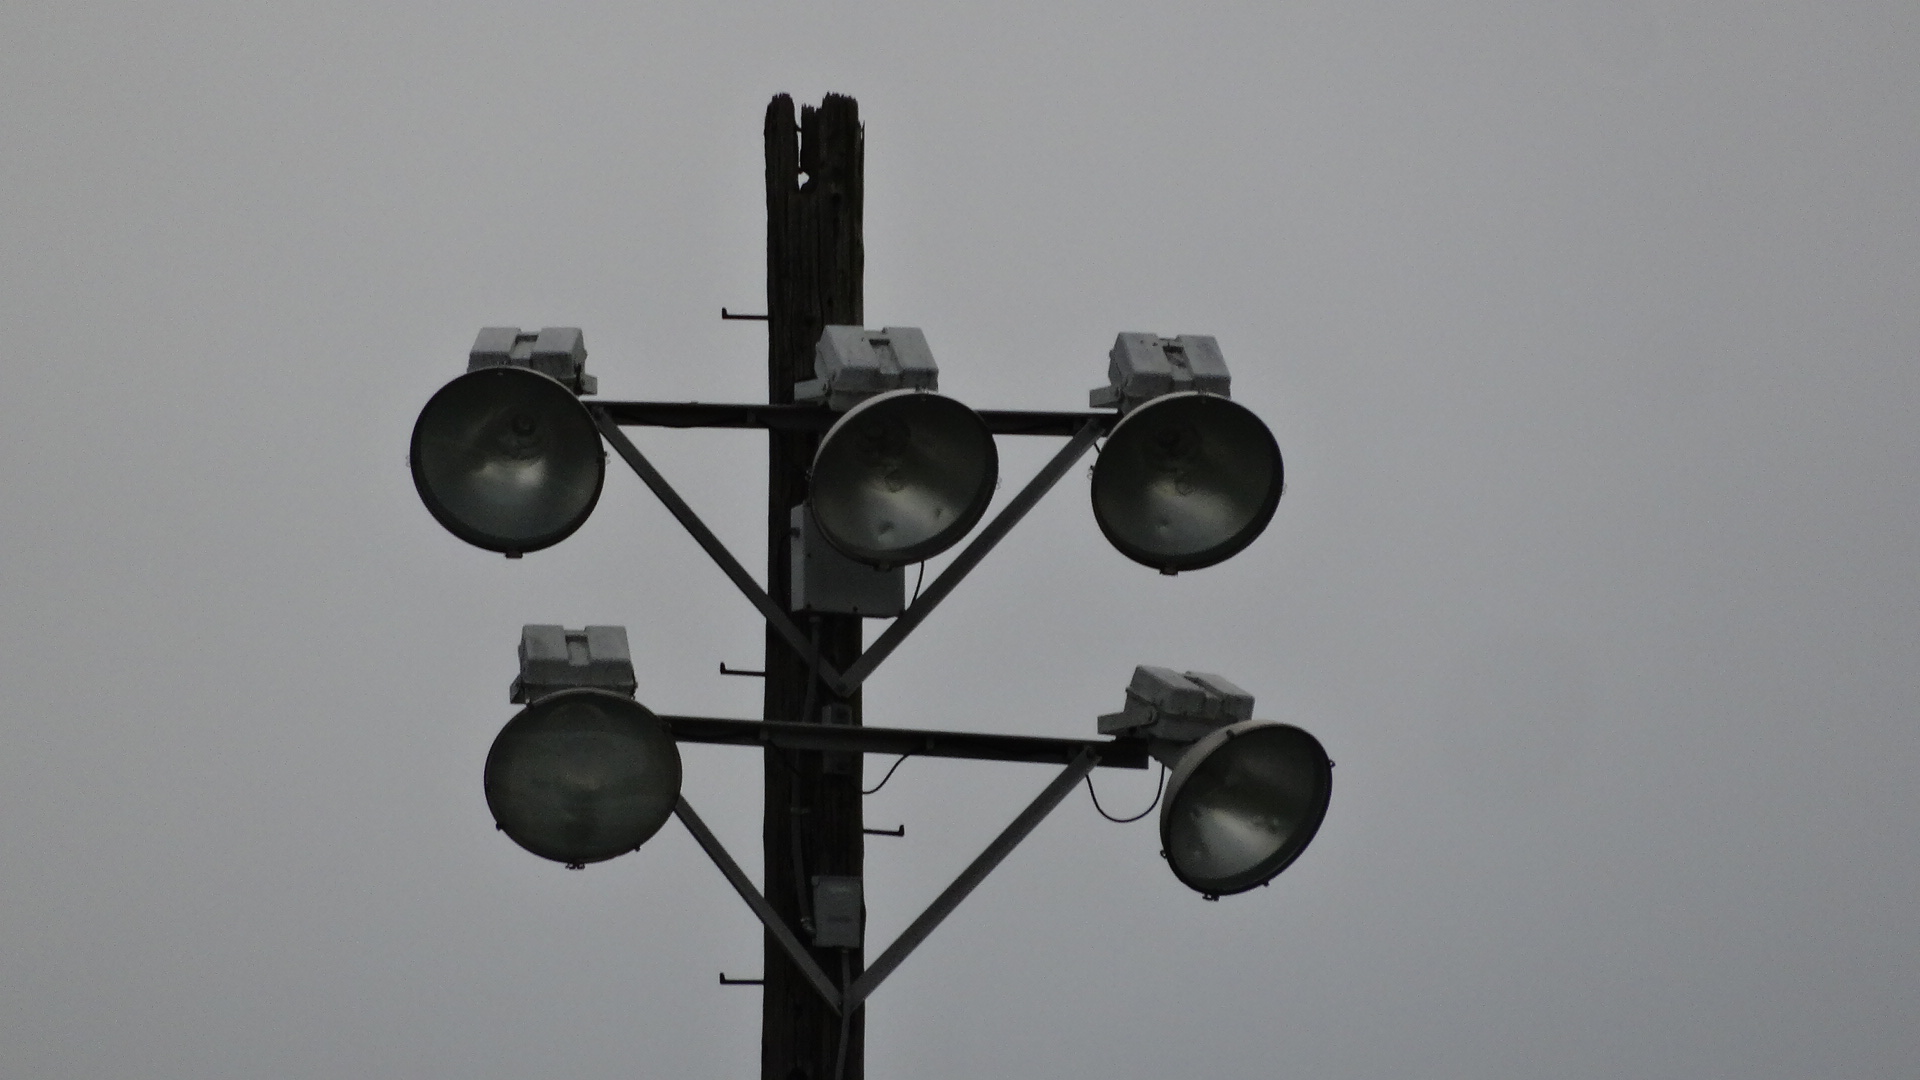 The frayed tops of the football stadium light poles show their age. The lights and poles are set to be replaced.